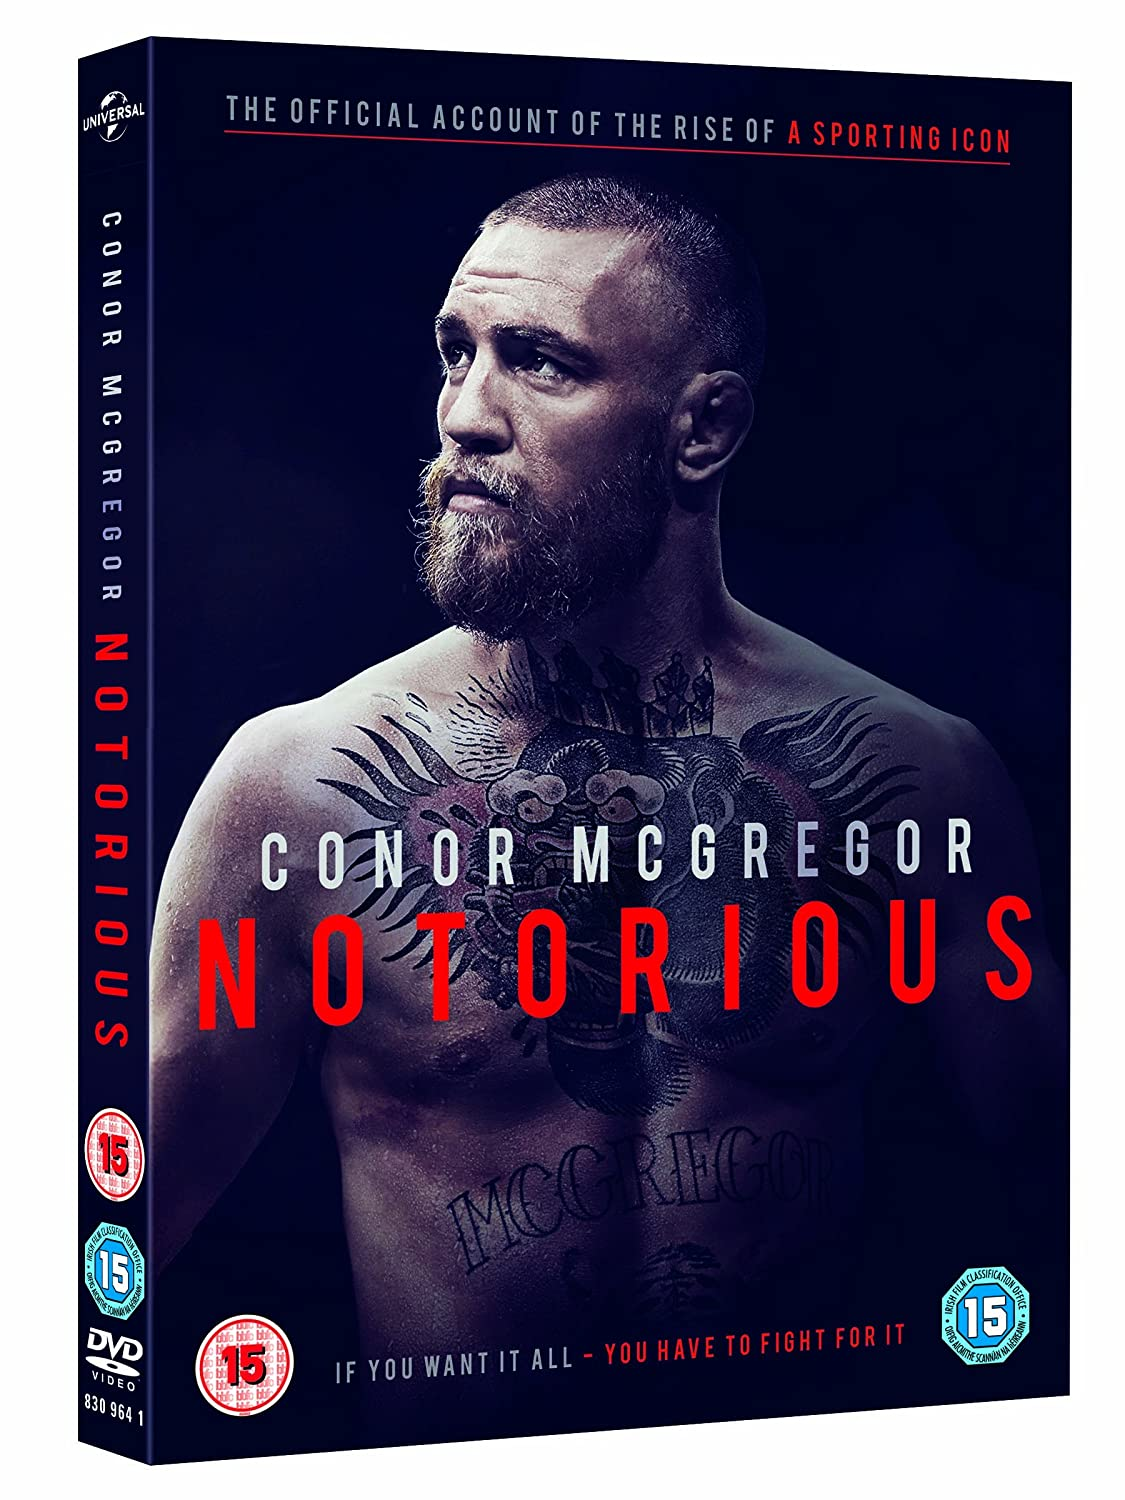 8d80fe8420bfb Conor McGregor - Notorious Official Film DVD 2017 2016: Amazon.co.uk ...